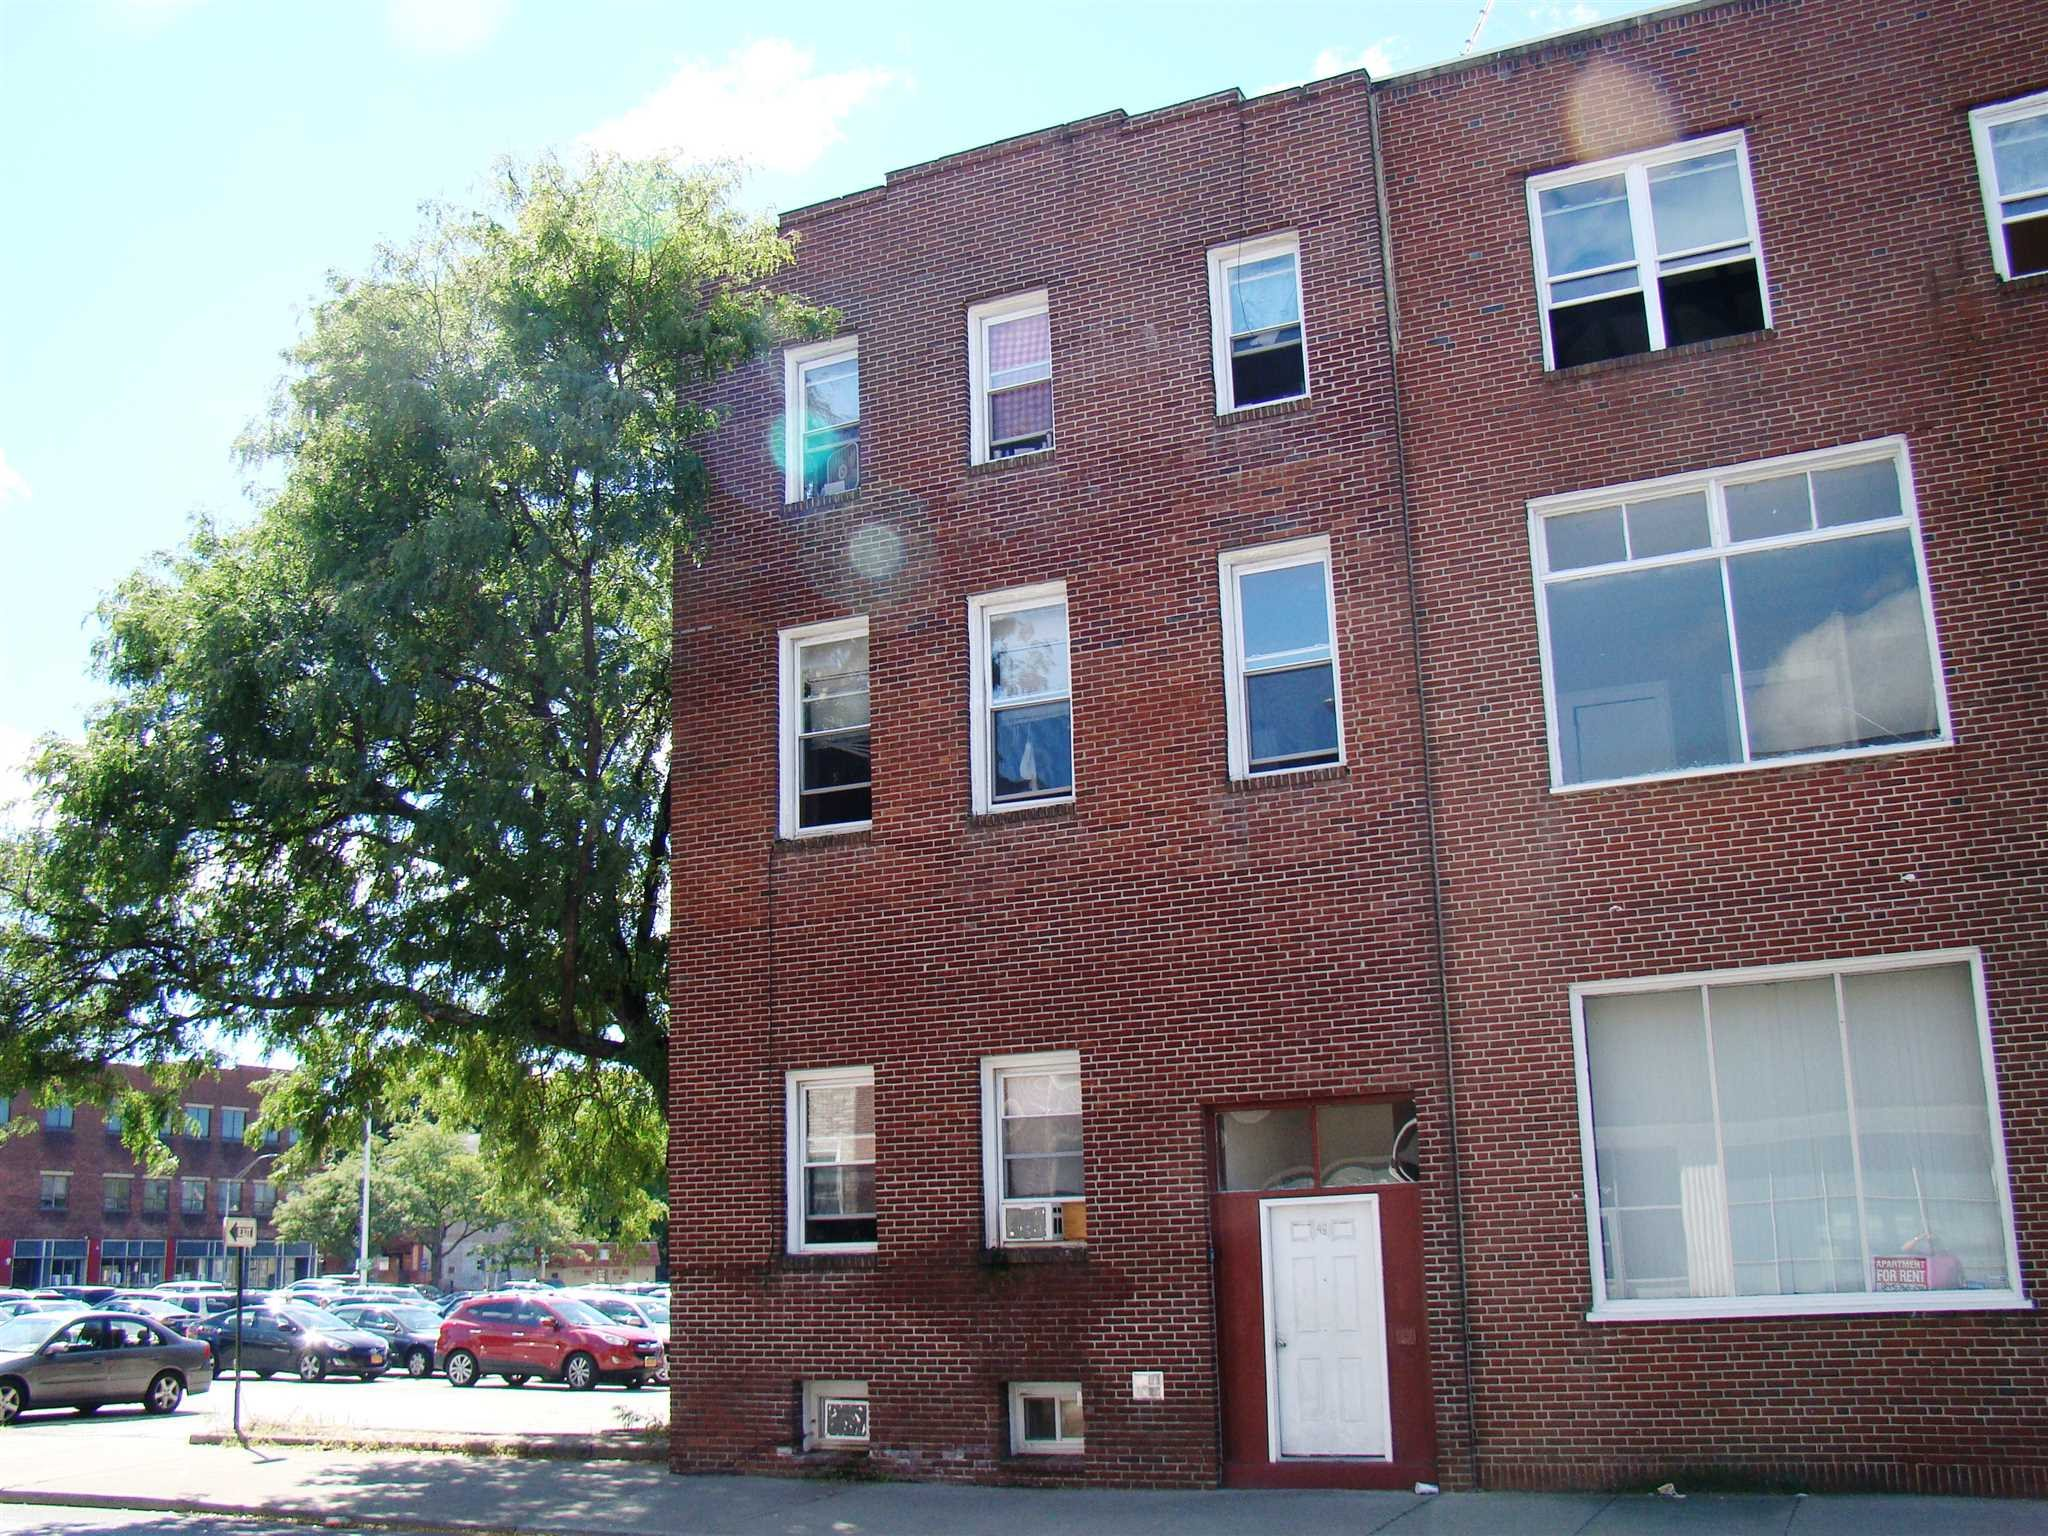 Single Family Home for Sale at 48 CANNON Street 48 CANNON Street Poughkeepsie, New York 12601 United States